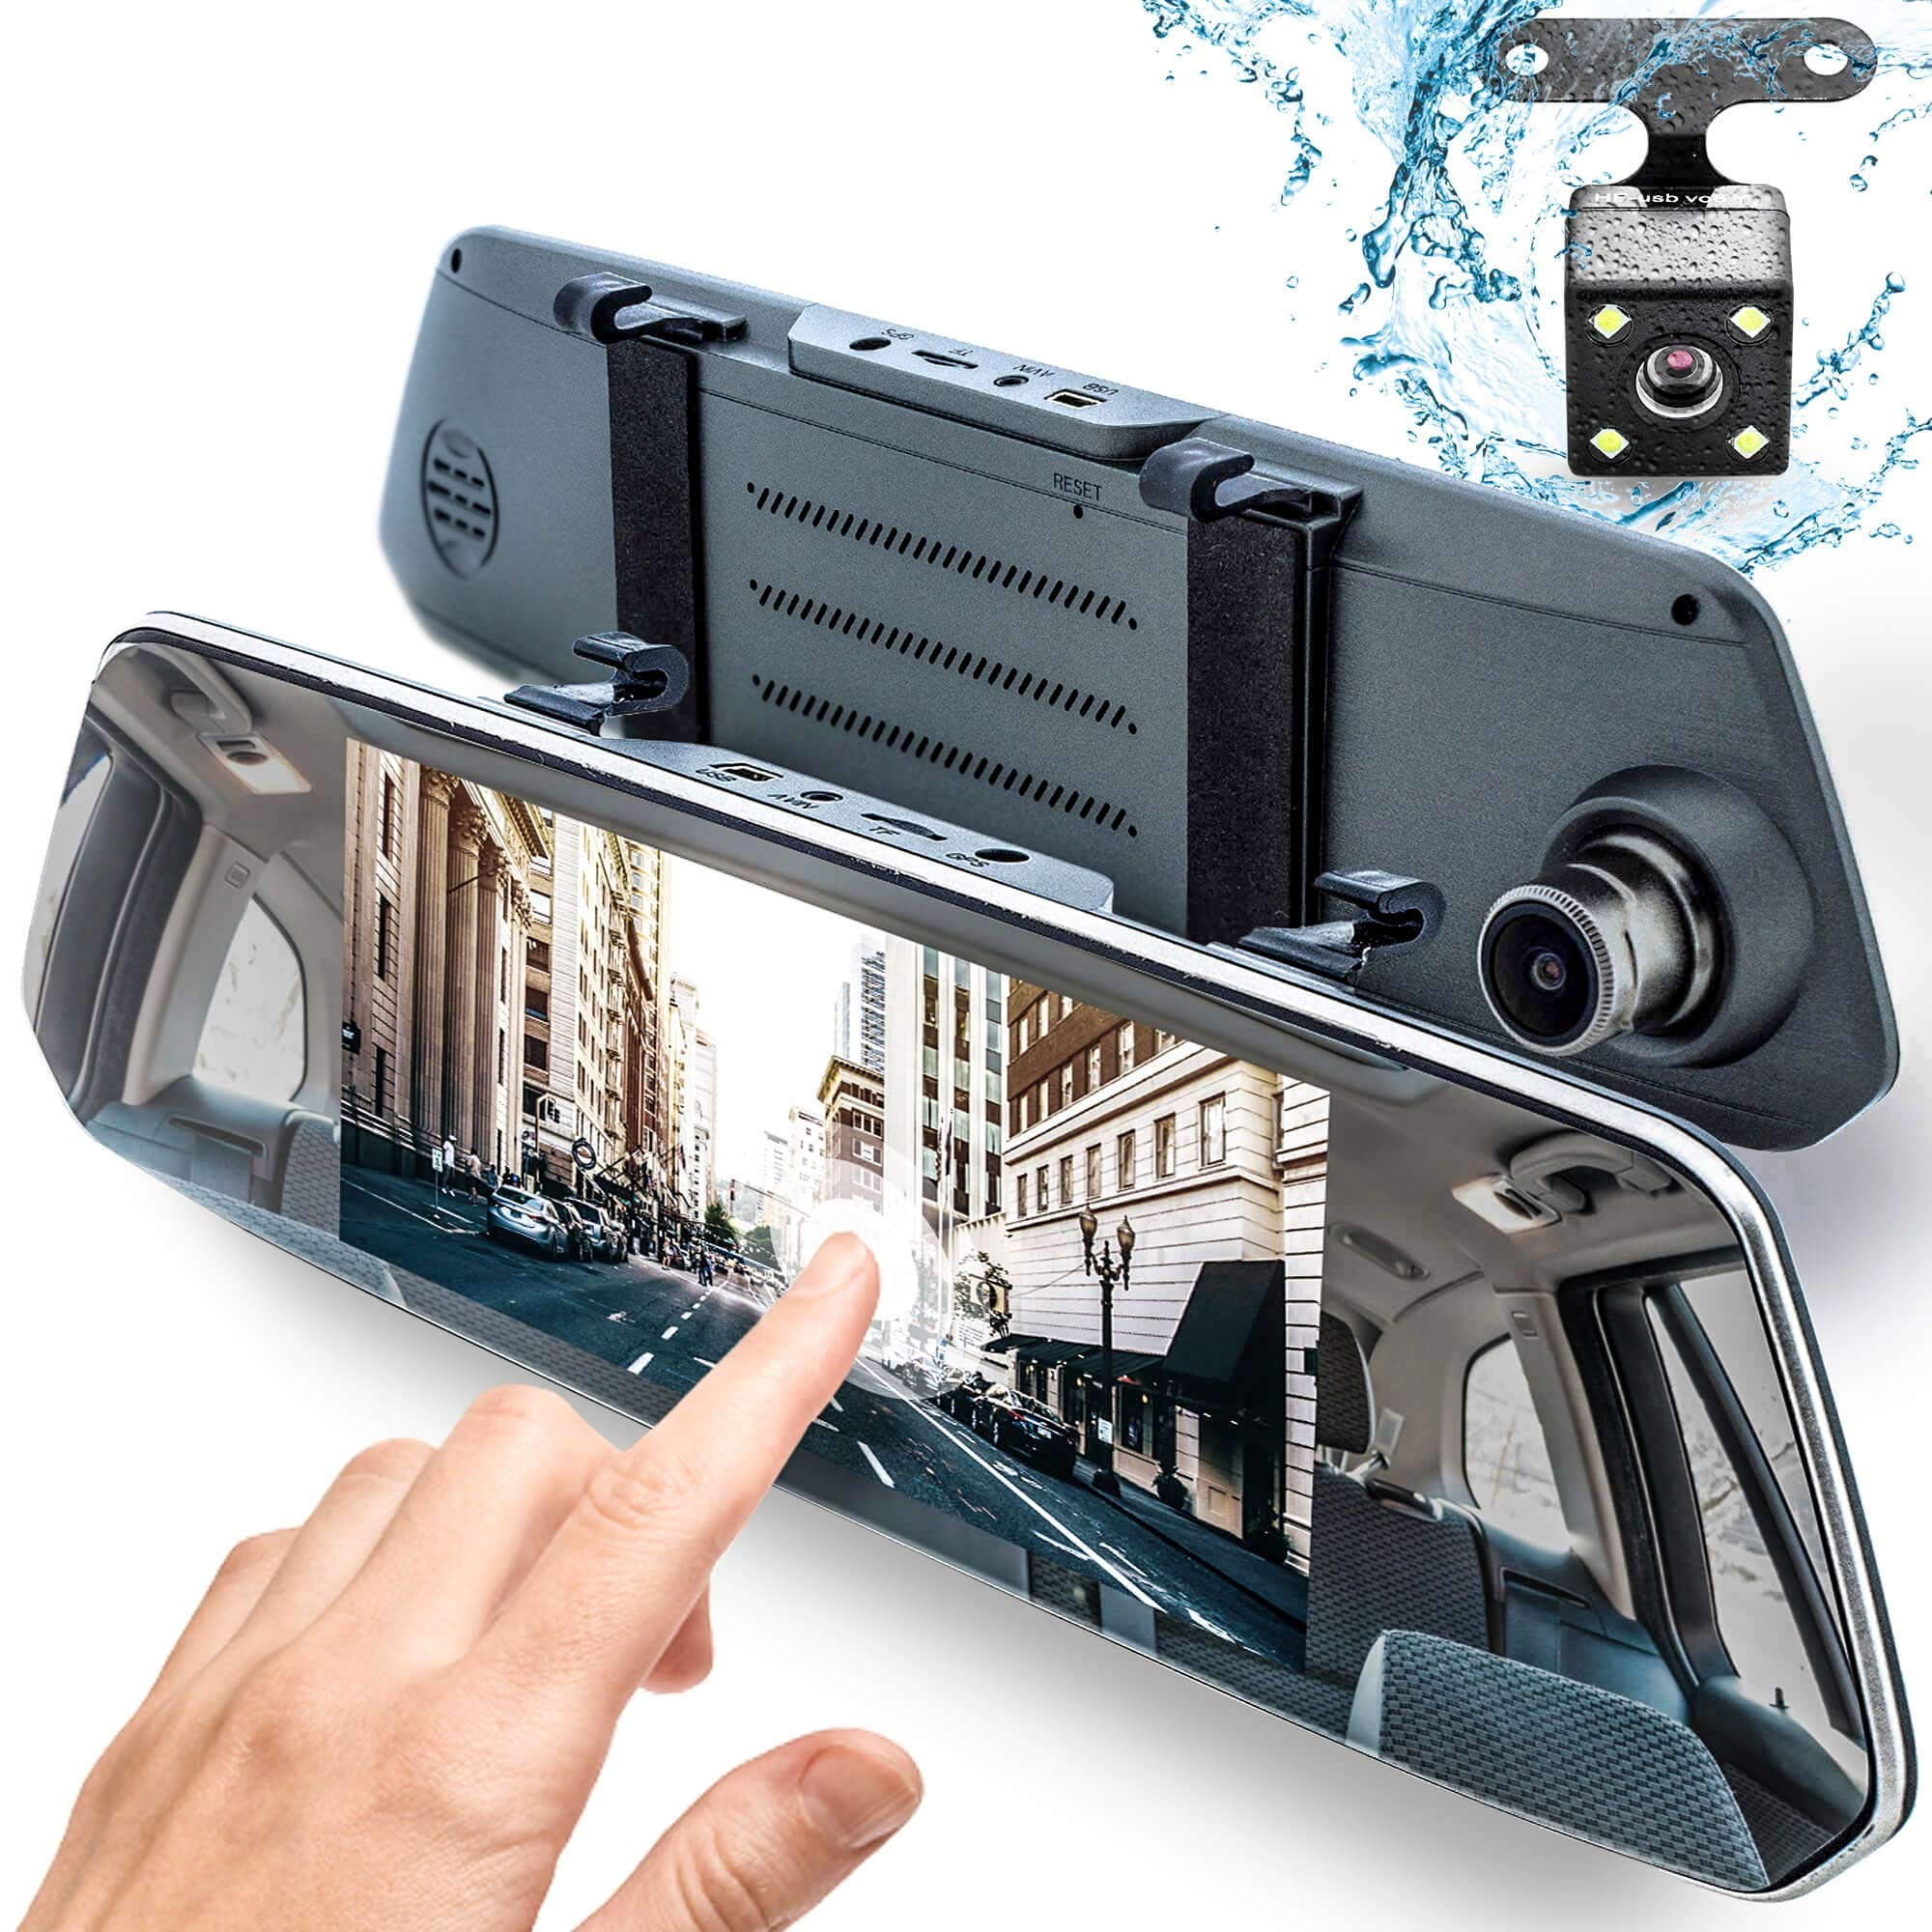 Rear View Mirror Dash Cam 1080P - 7'' IPS Touch-Screen - Protect Your Comfort on a Road - by Dr.Smartec by Dr.Smartec